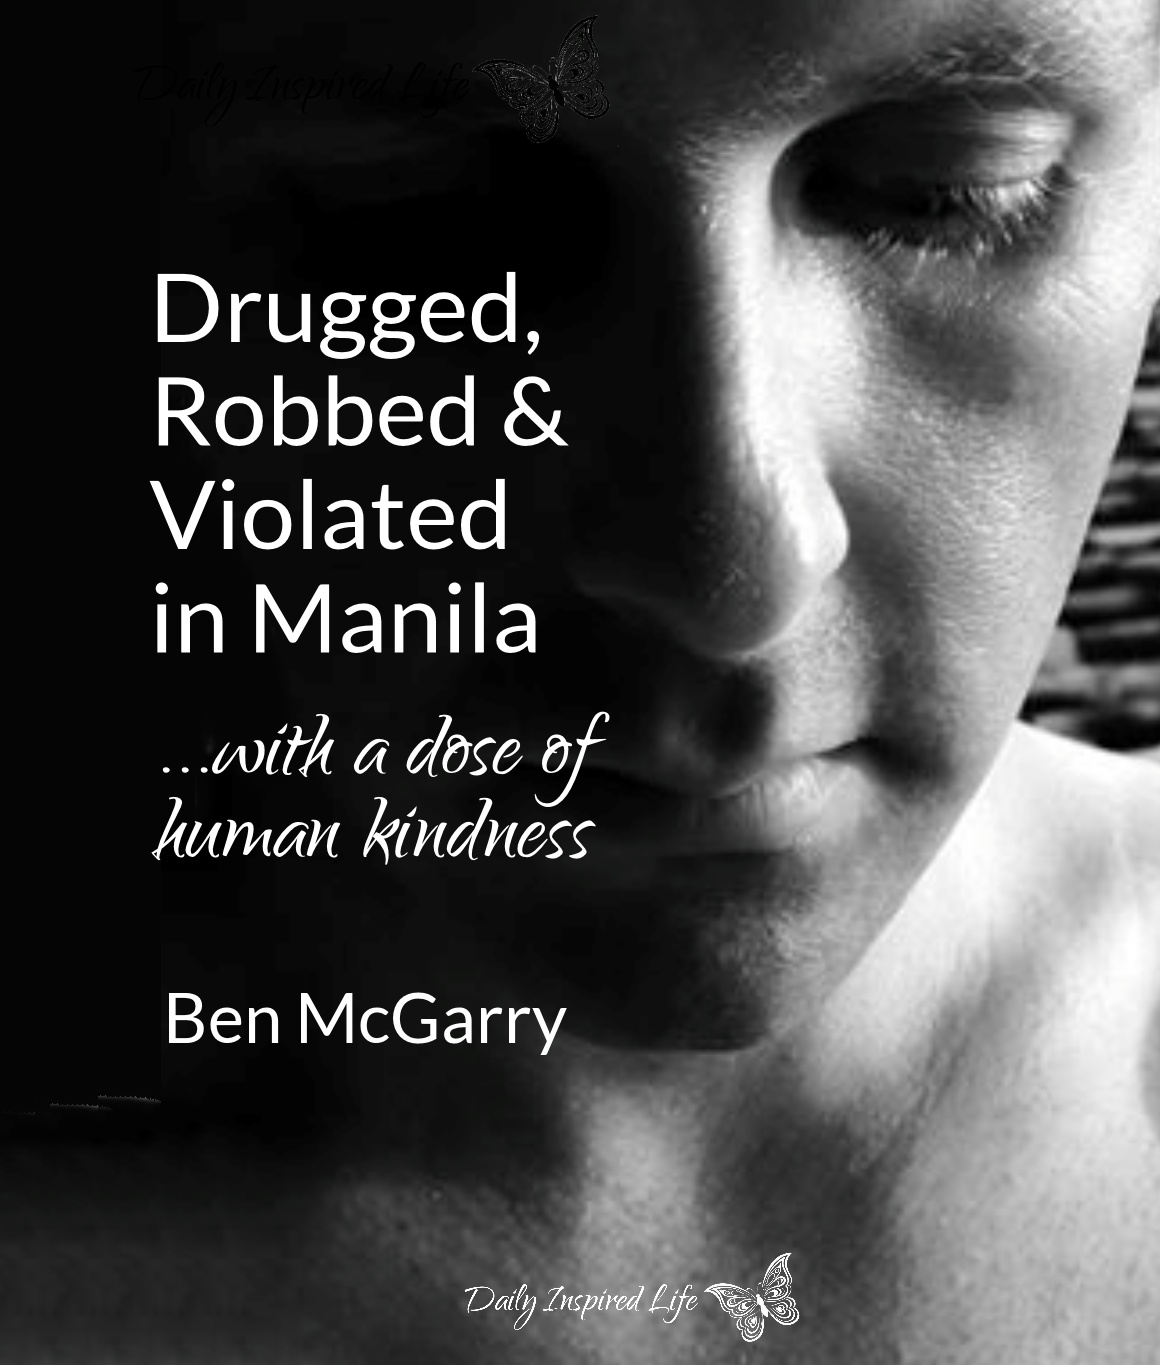 ben mcgarry drugged, robbed and violated in manila